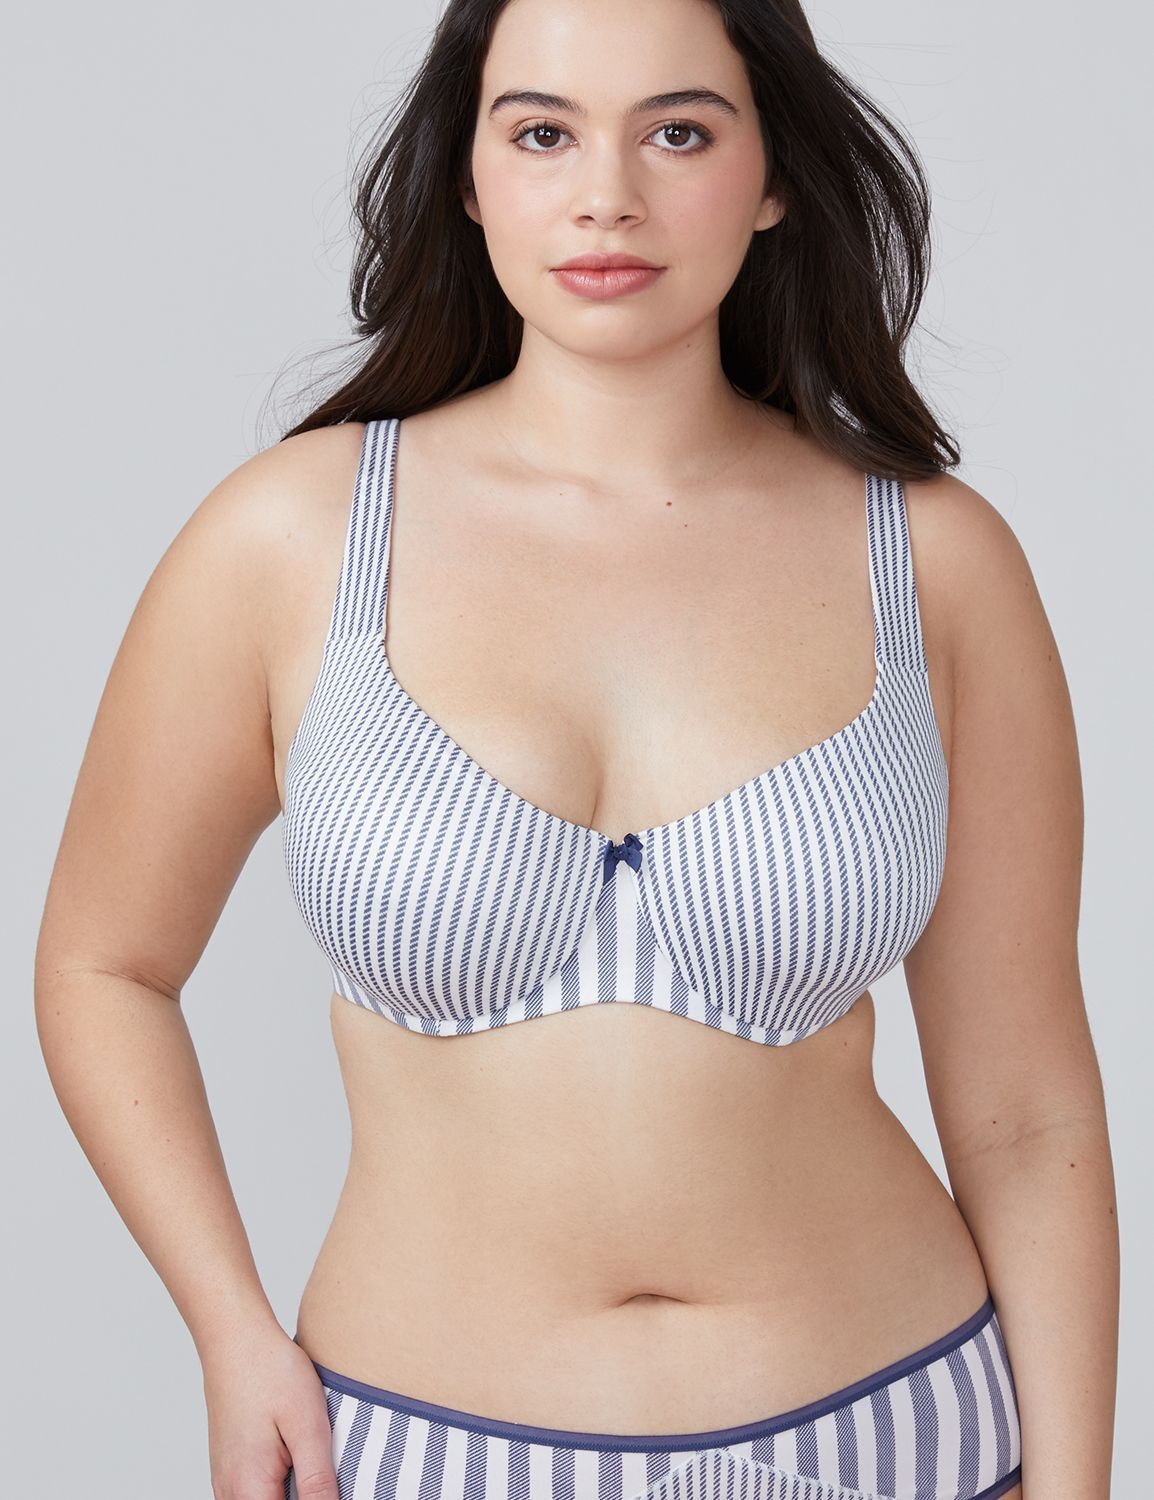 ad4849f50 True Embrace Unlined Full Coverage Bra | Products in 2019 | Bra ...